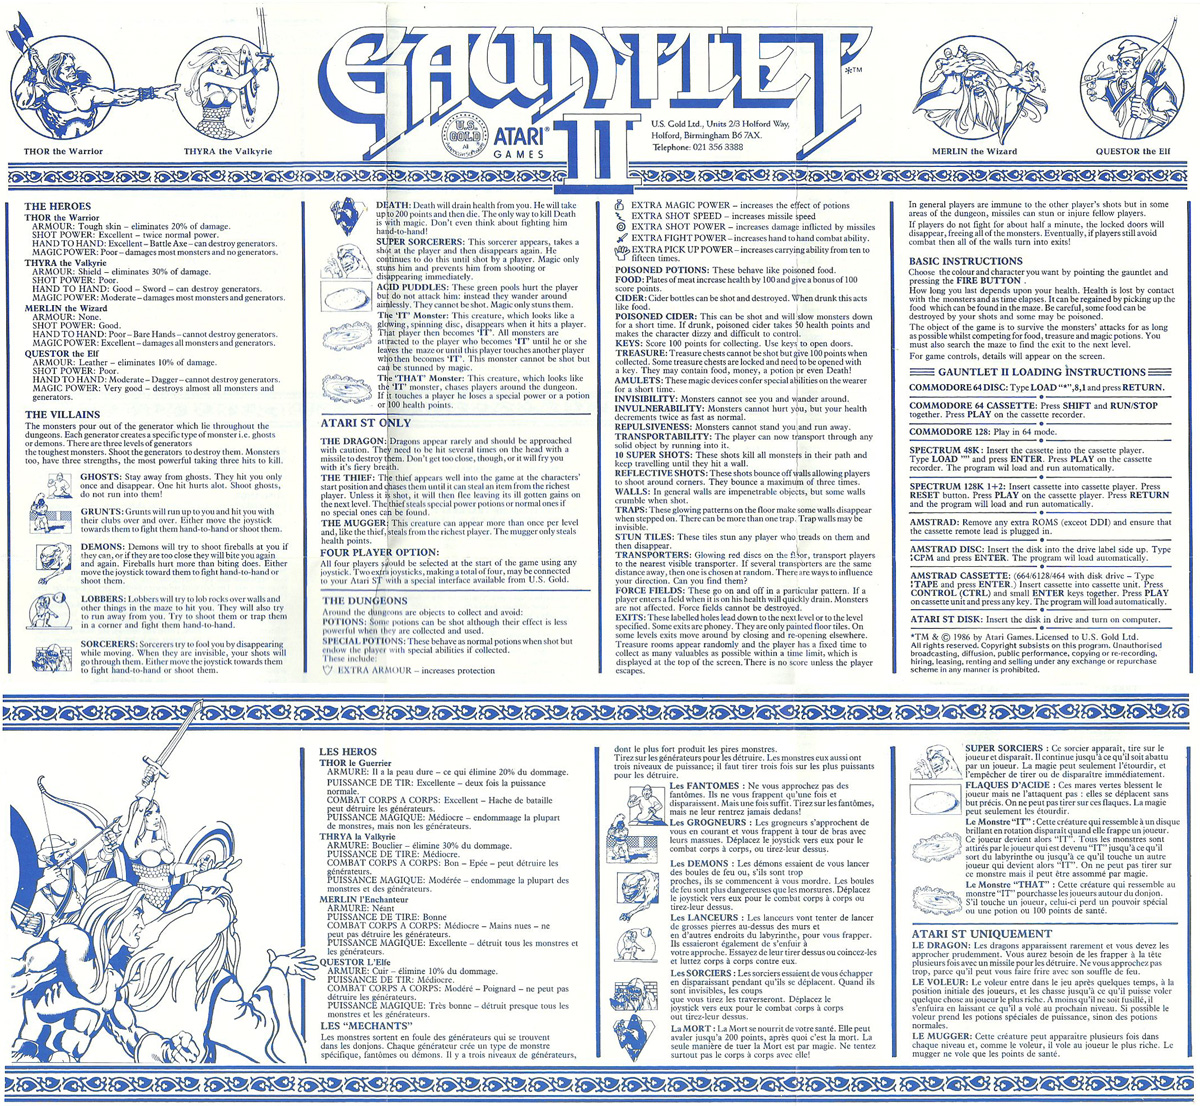 Gauntlet II Atari instructions